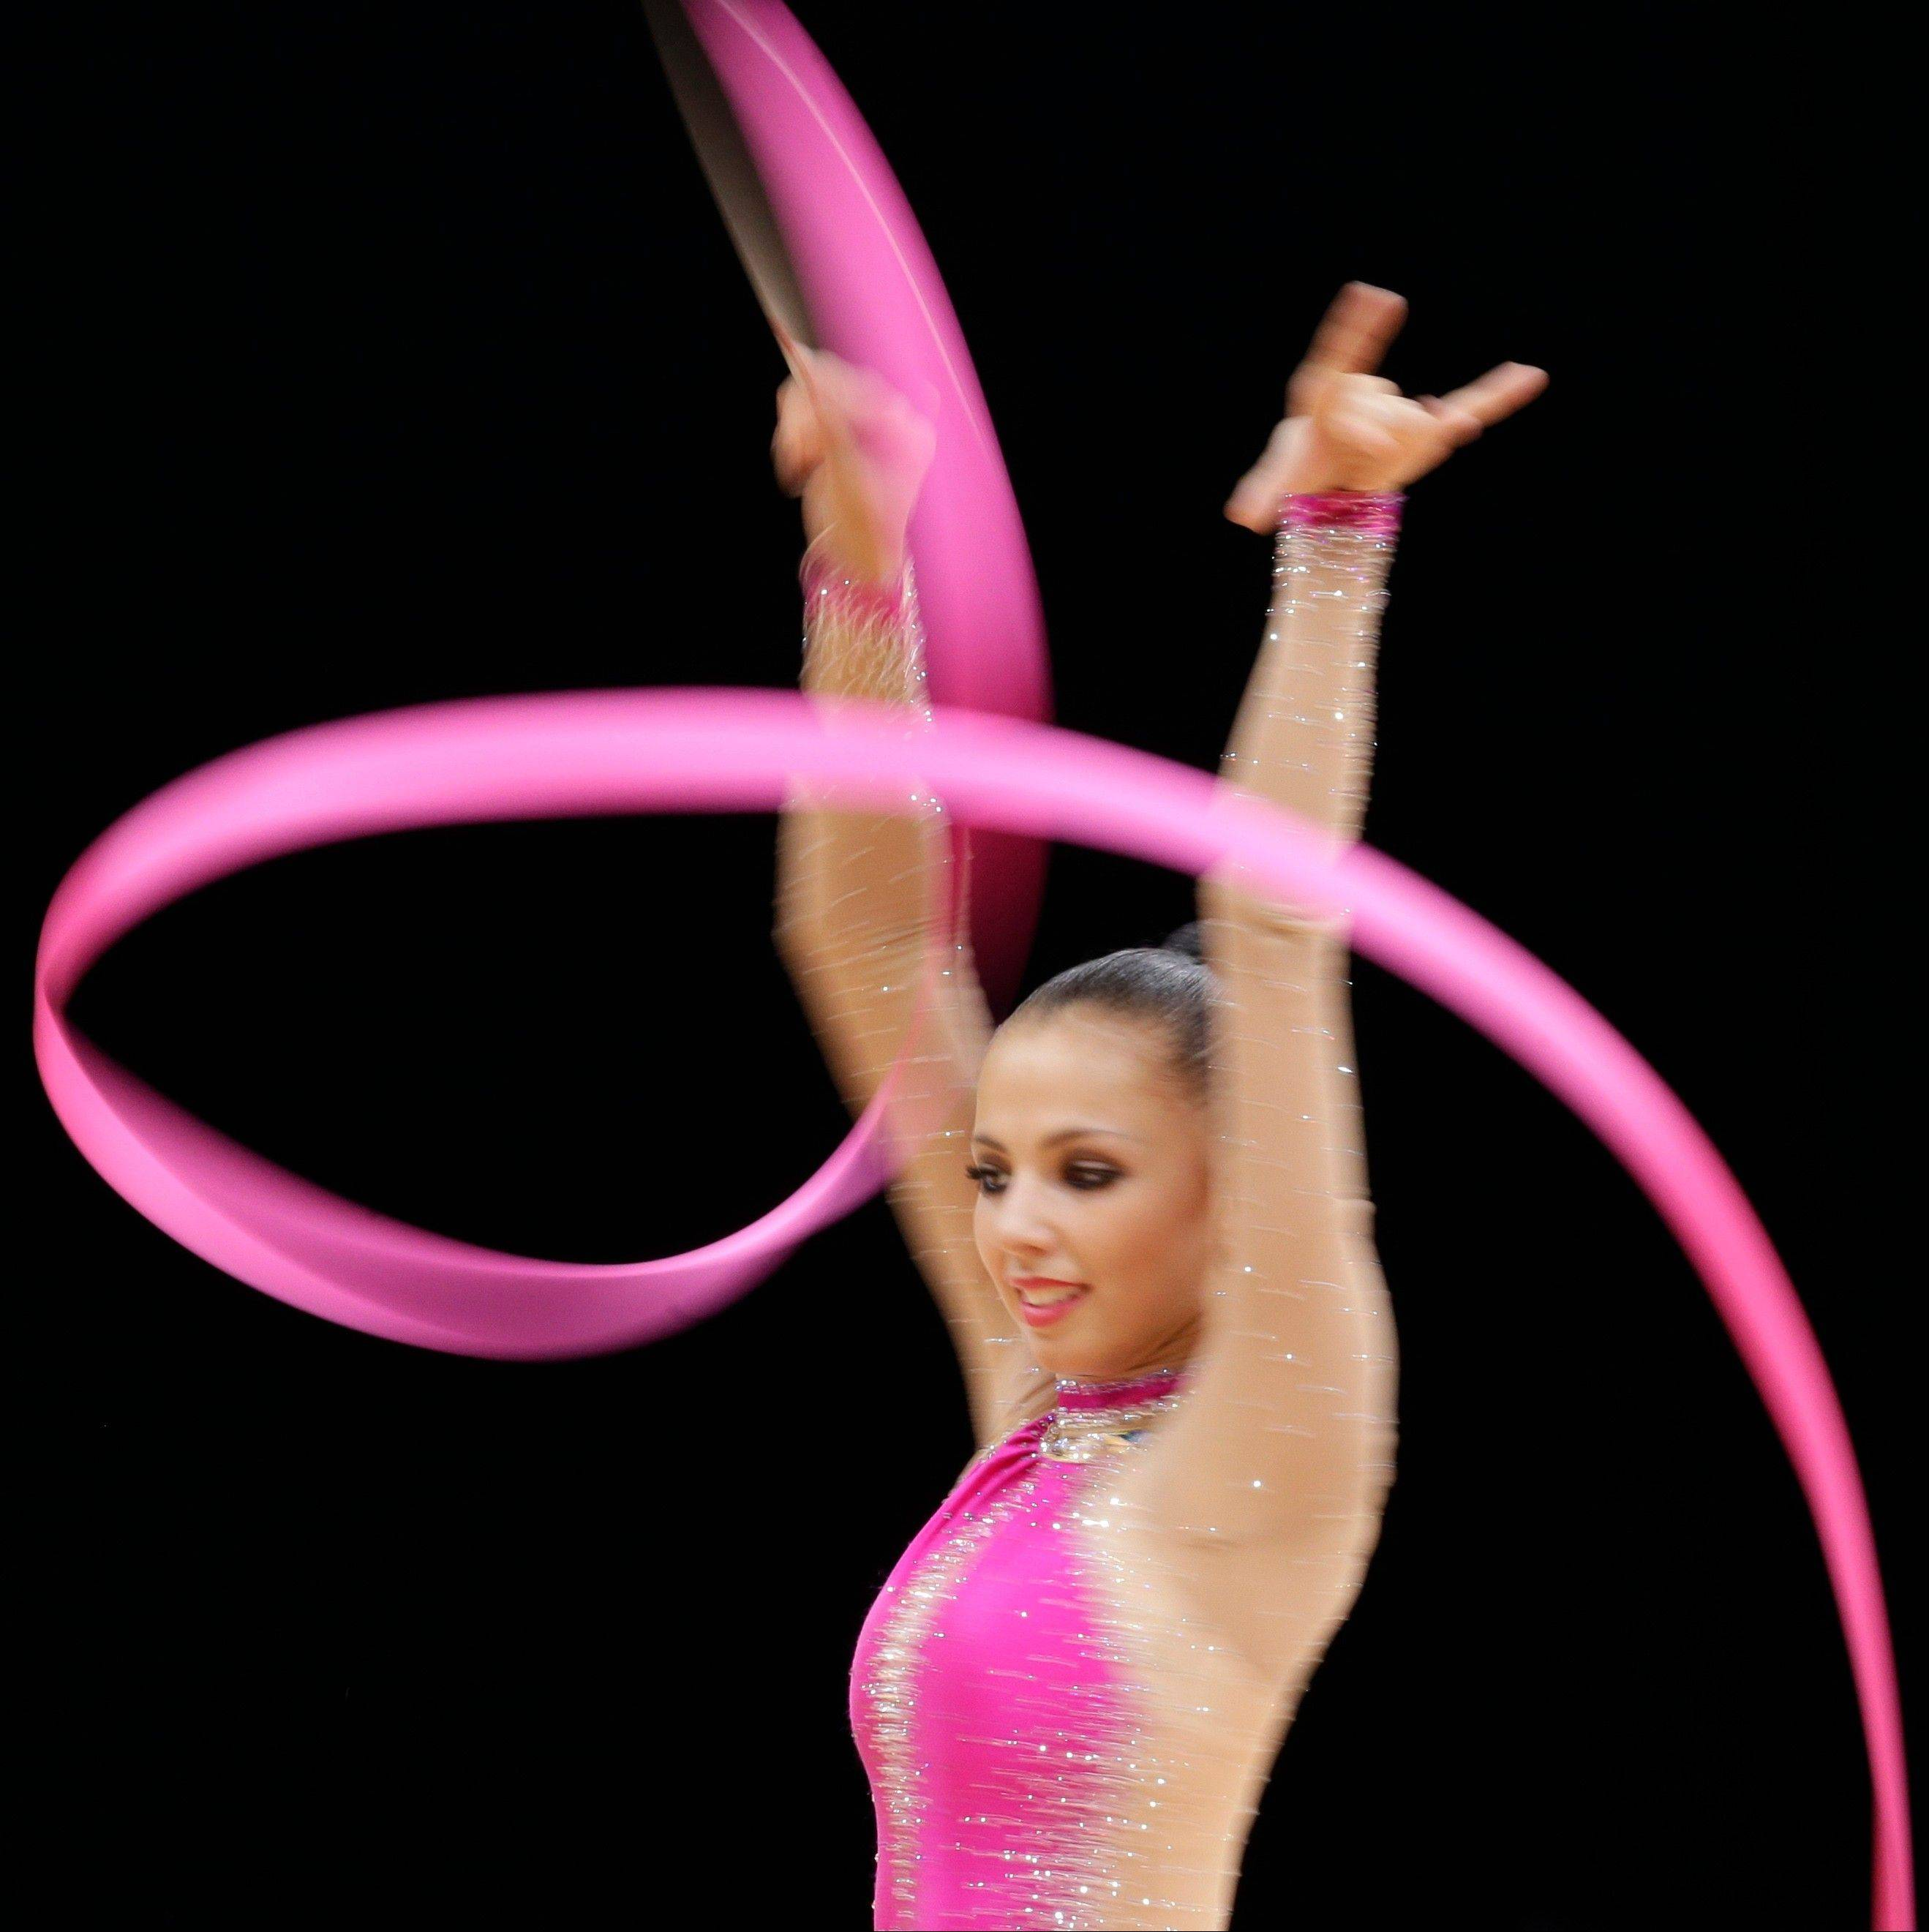 Russia�s Daria Dmitrieva performs during the rhythmic gymnastics individual all-around qualifications at the 2012 Summer Olympics, Friday, Aug. 10, 2012, in London.